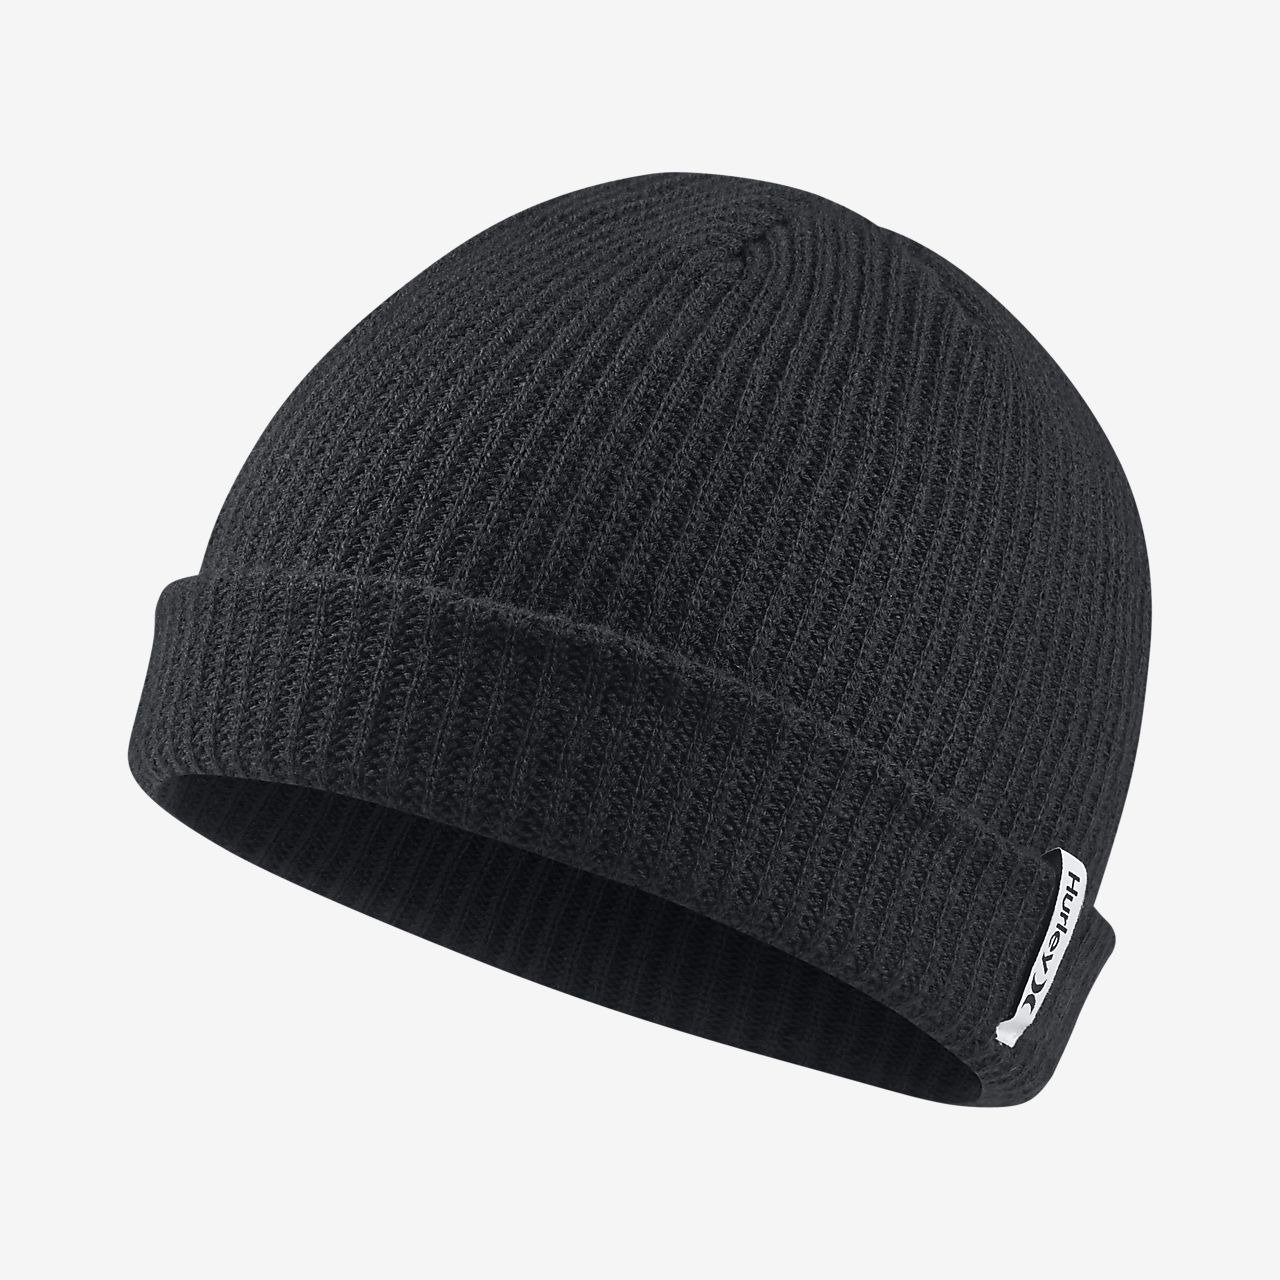 c855217c6e0 ... new zealand hurley staple one and only mens beanie 7d2d1 5a361